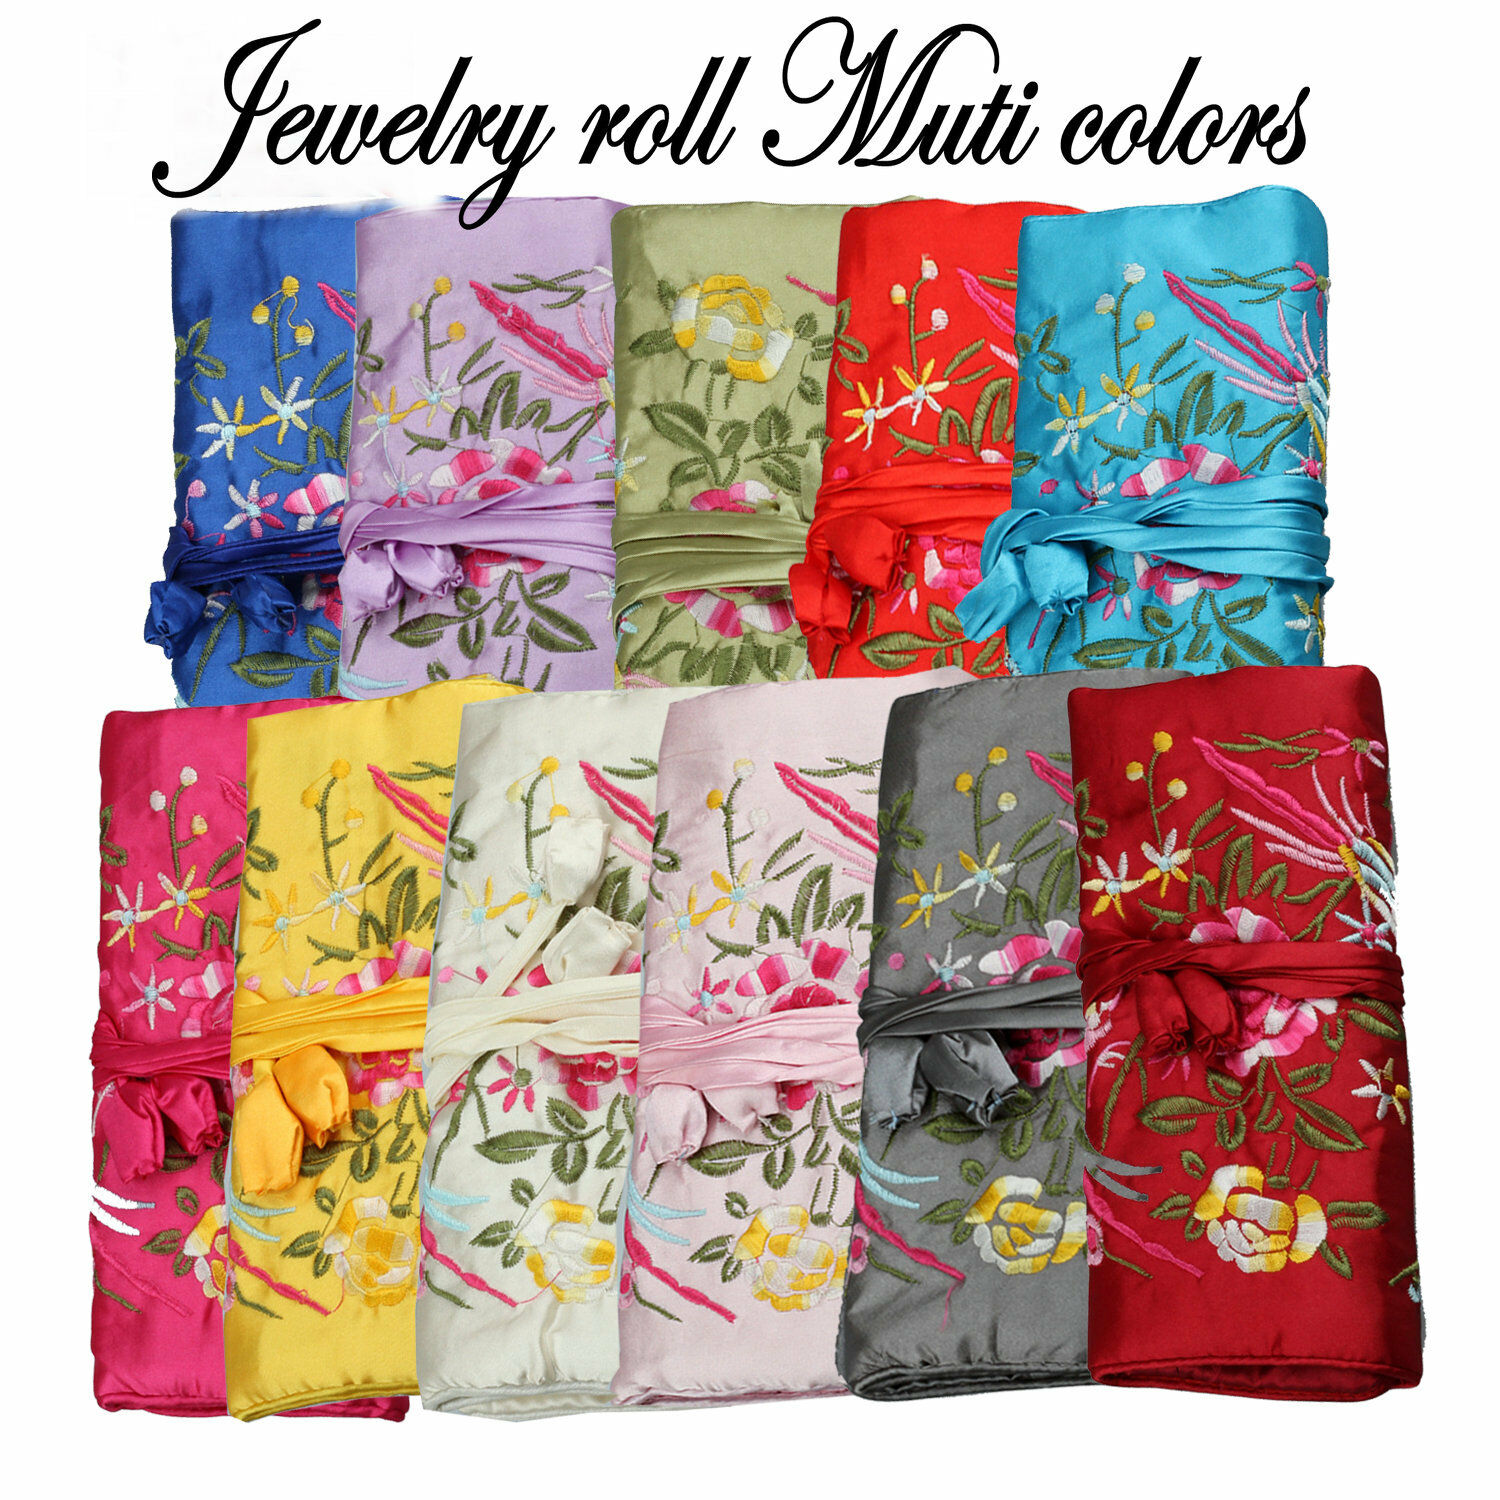 Chinese Silk Jewelry Organizer Pouches 3 Zipper Bag Embroidery Flower Bird Travel Roll Bag Jewelry Packaging Small Gift Box NEW